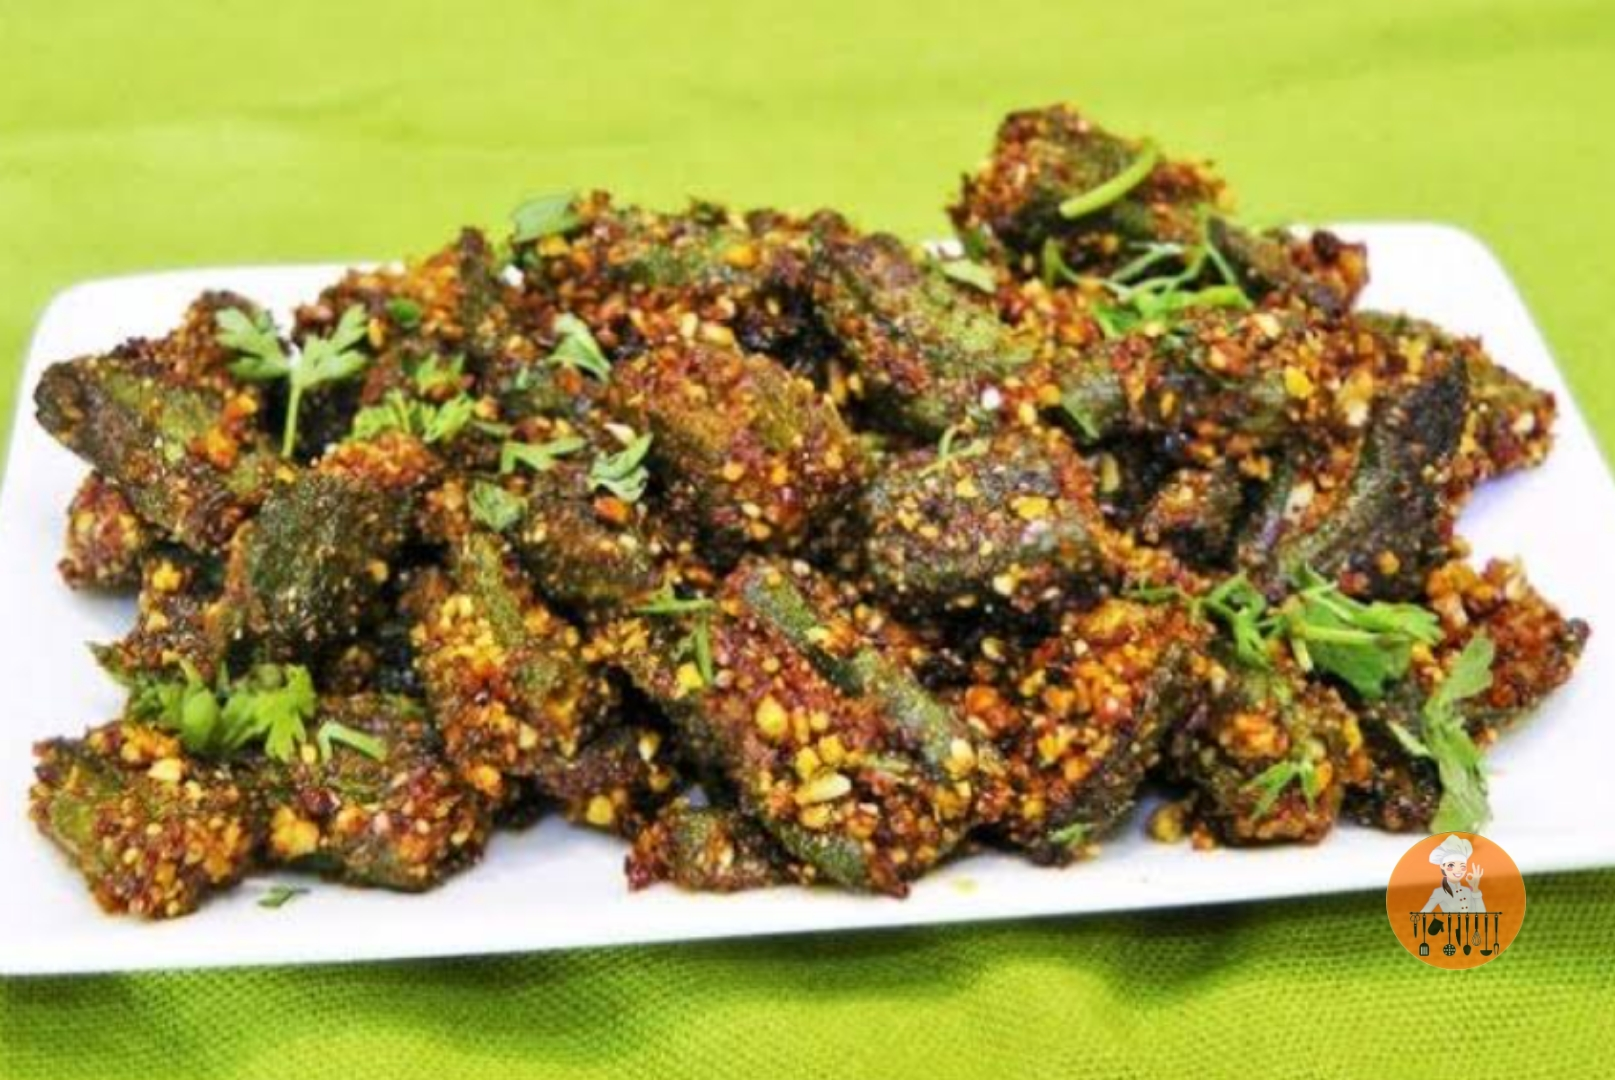 SPECIAL AND TRADITIONAL FOODS TO EAT ON GUDIPADWA